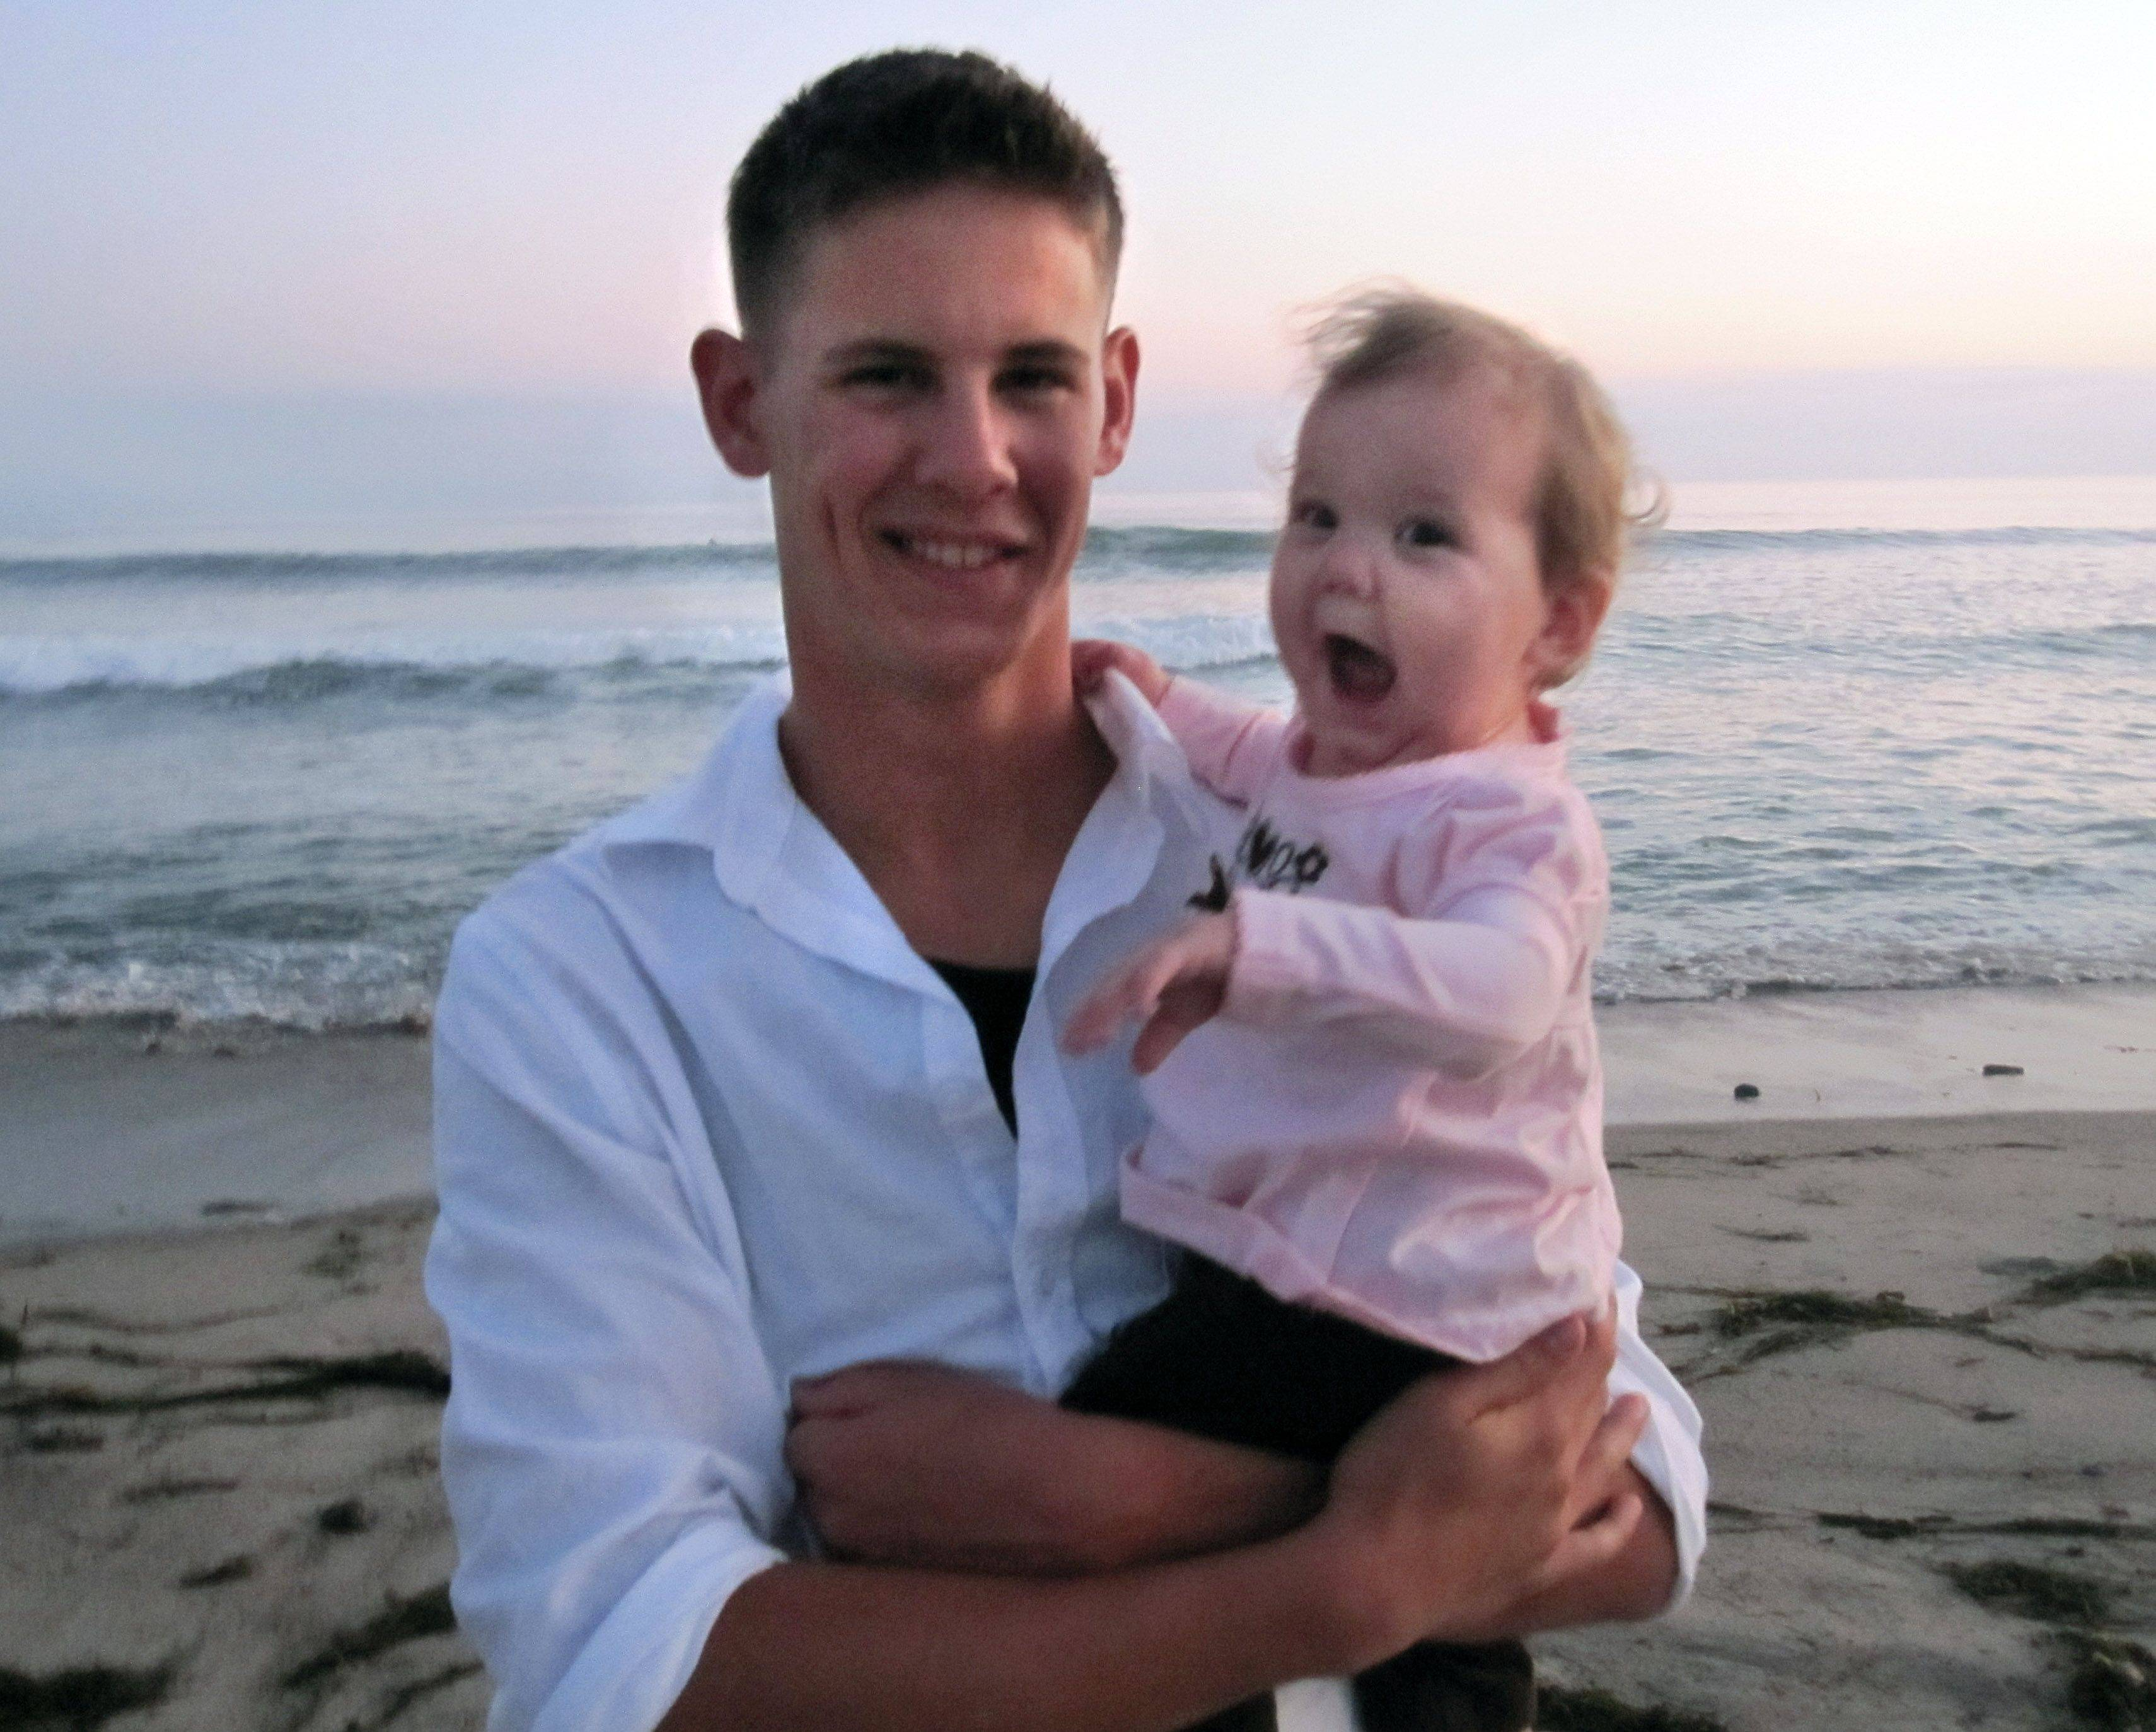 Marine Lance Cpl. James Stack and his one-year-old daughter Mikayla at Camp Pendleton in California. He was killed in Afghanistan Nov. 10.